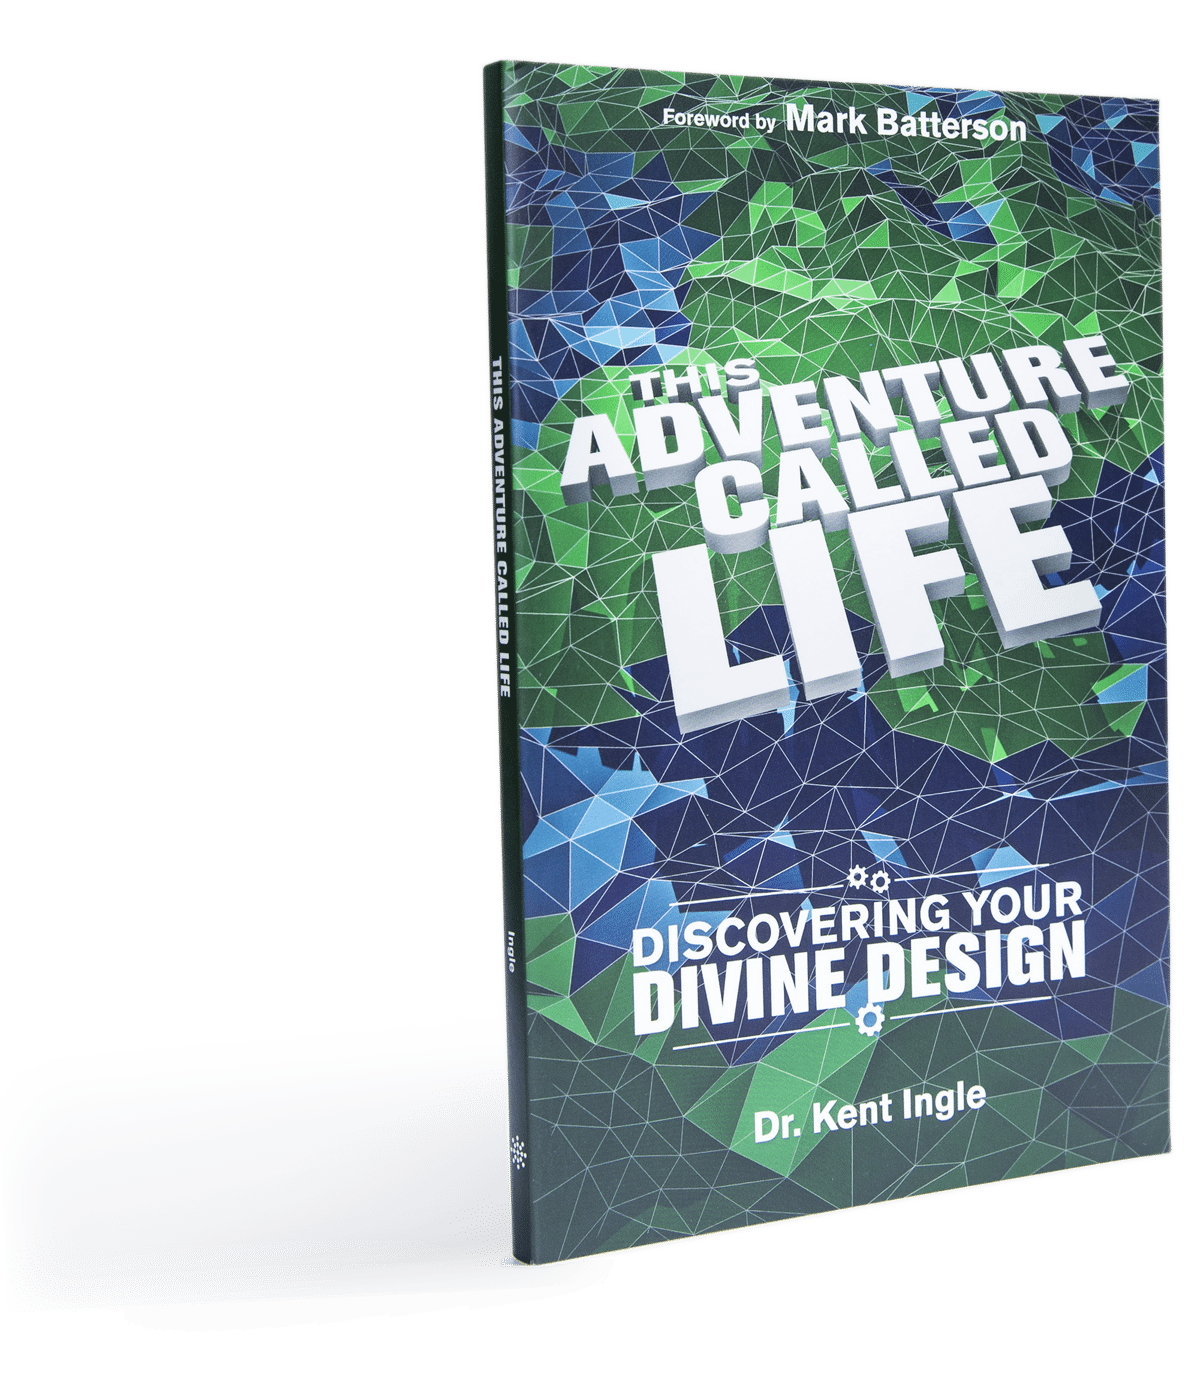 Book cover of Kent Ingle's book titled This Adventure Called Life